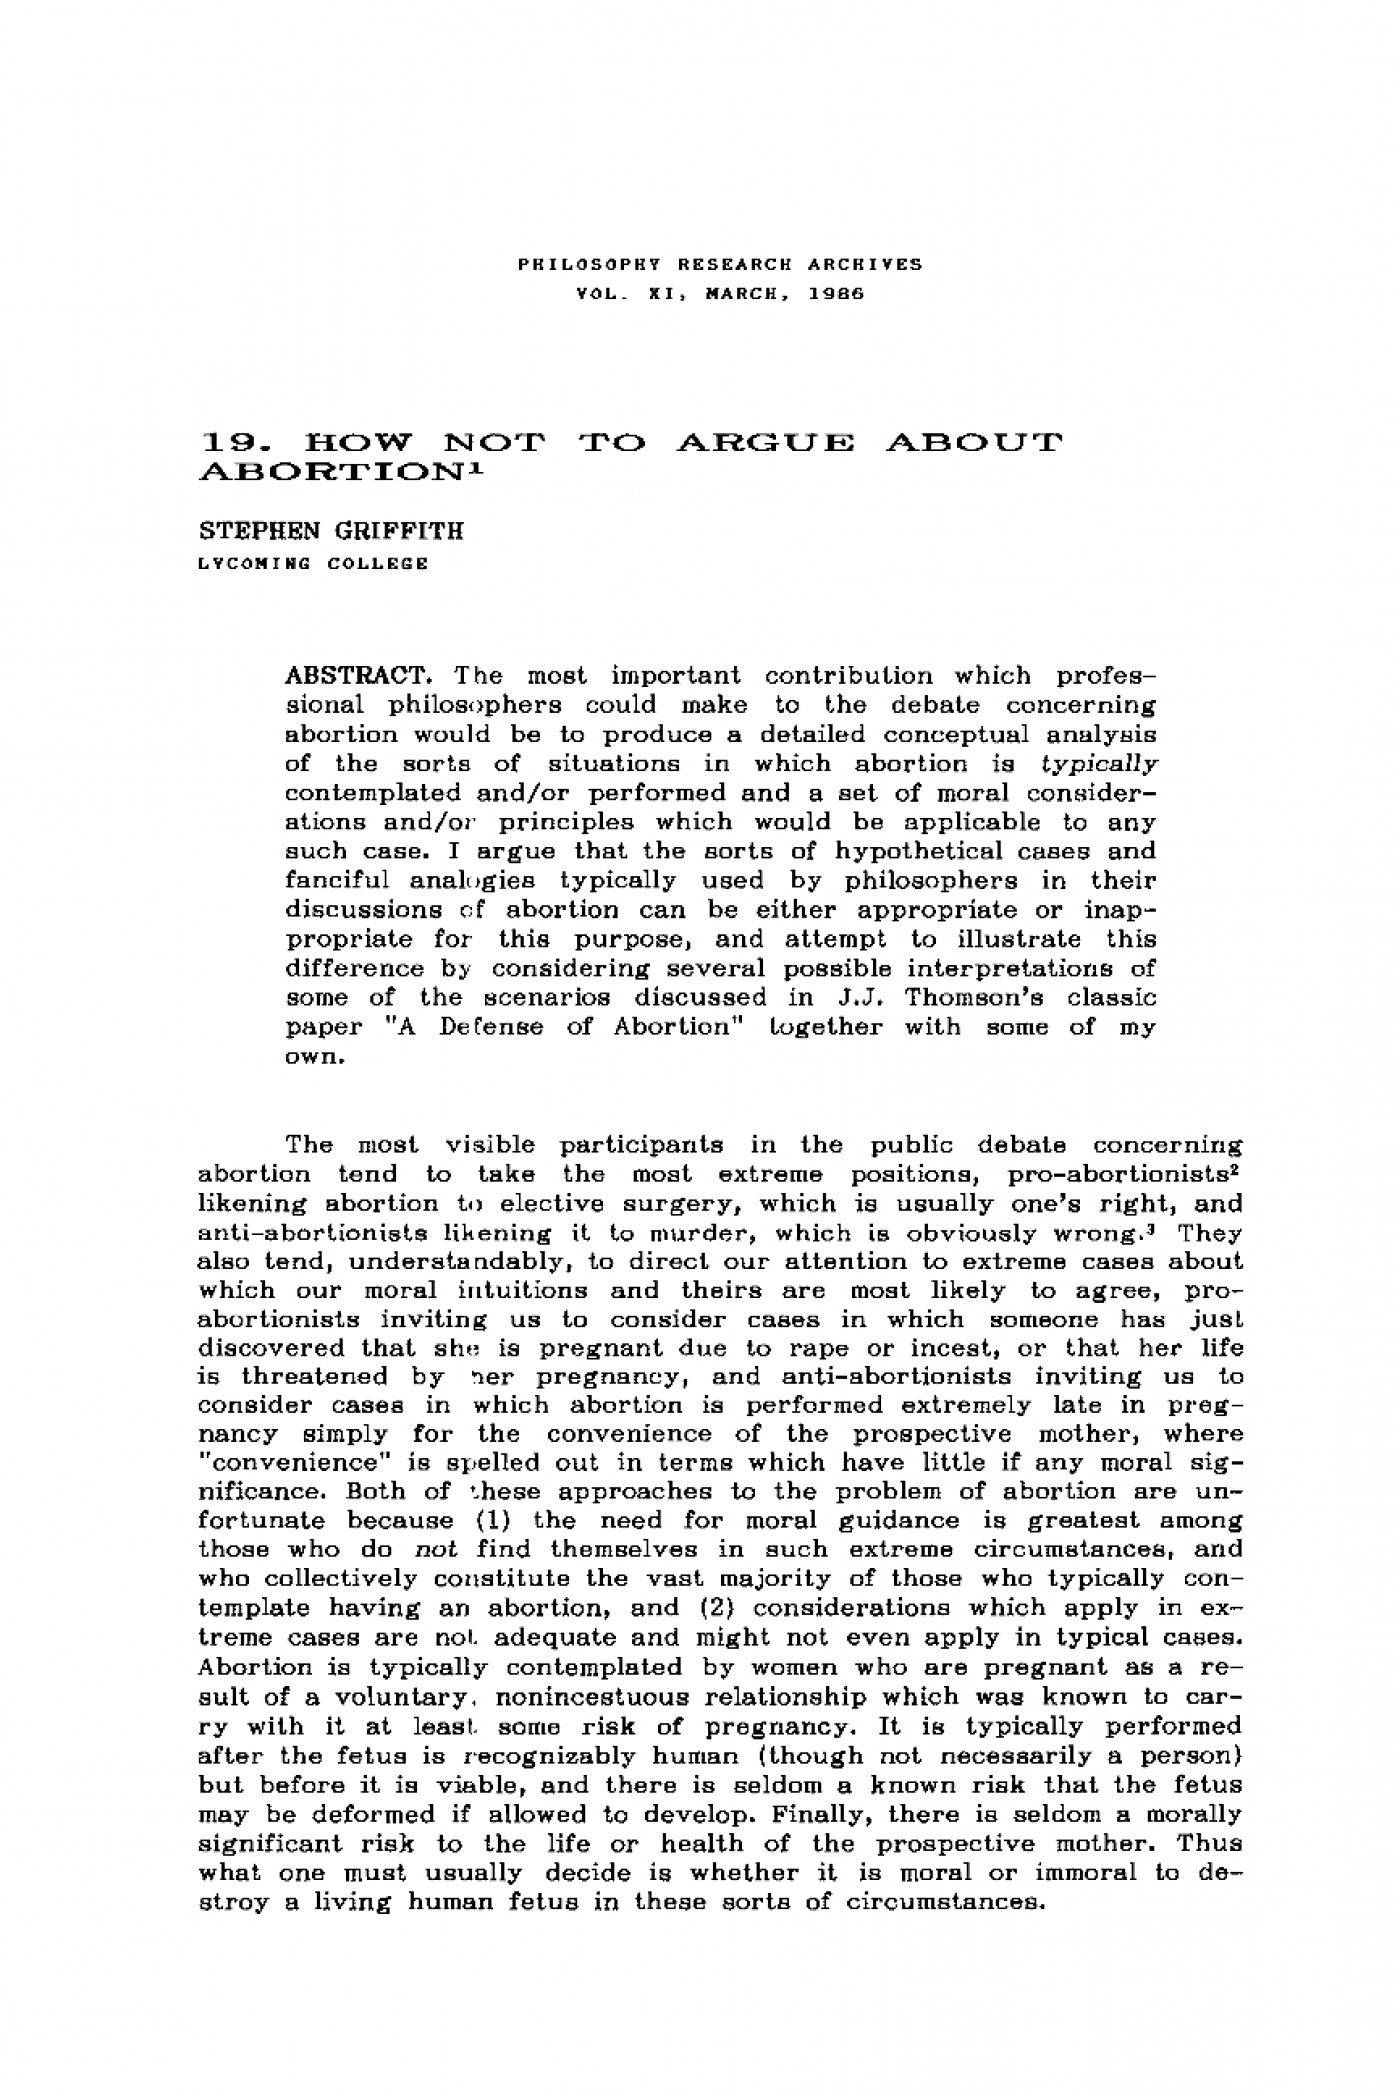 008 Pro Choice Abortion Research Paper Outline Uncategorized Essay Why Is Wrong Argument On Argumentative Oracleboss Life Unique 1400